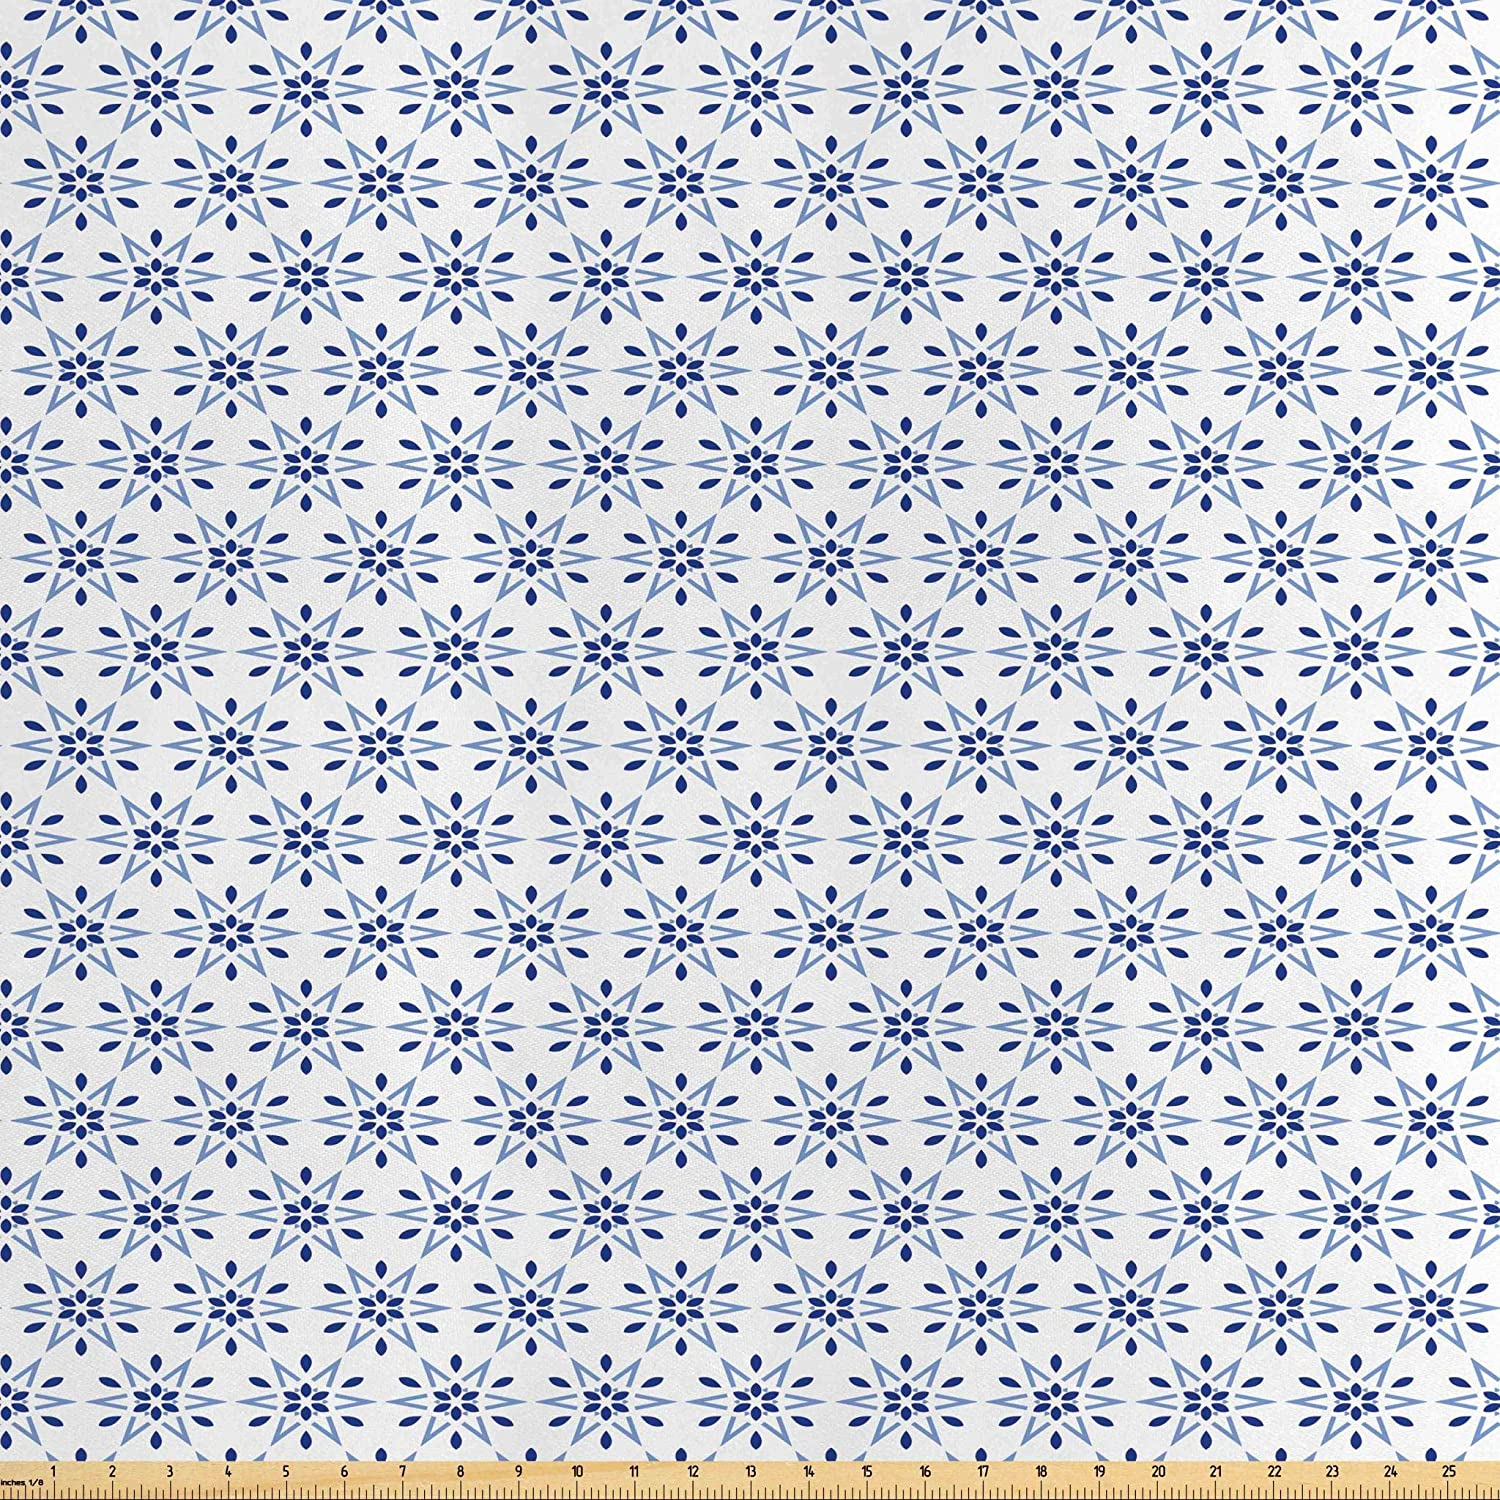 Lunarable Floral Fabric by The Yard, Circles with Floral Nature Details in Hexagonal Order and Blue Tones Print, Decorative Satin Fabric for Home Textiles and Crafts, 1 Yard, Violet Blue White